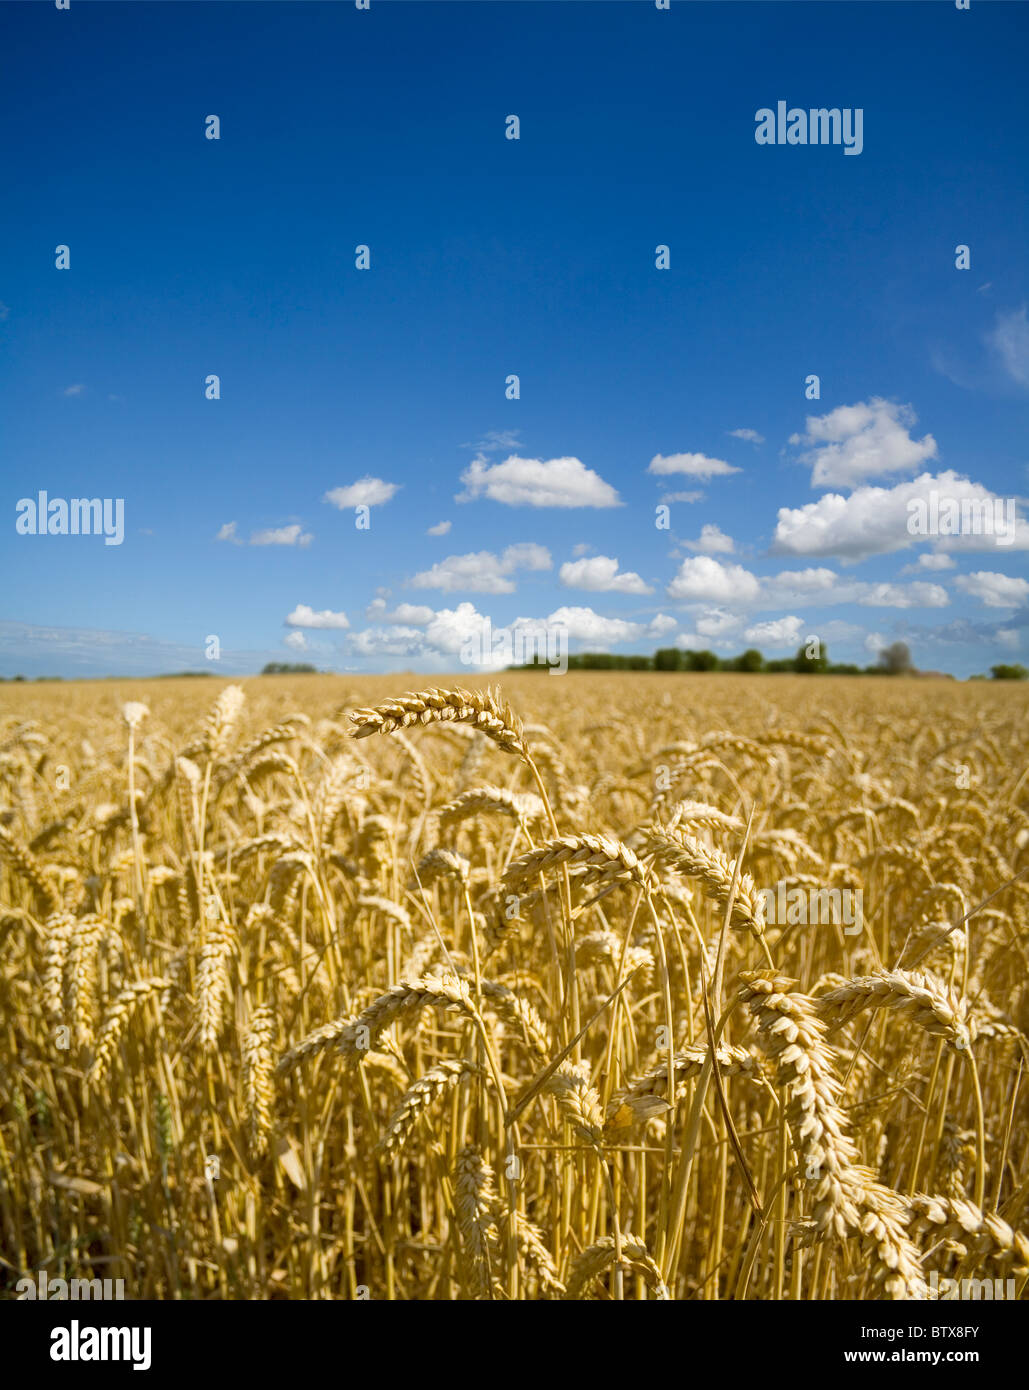 A field of ripe wheat beneath a high summer sky - Stock Image